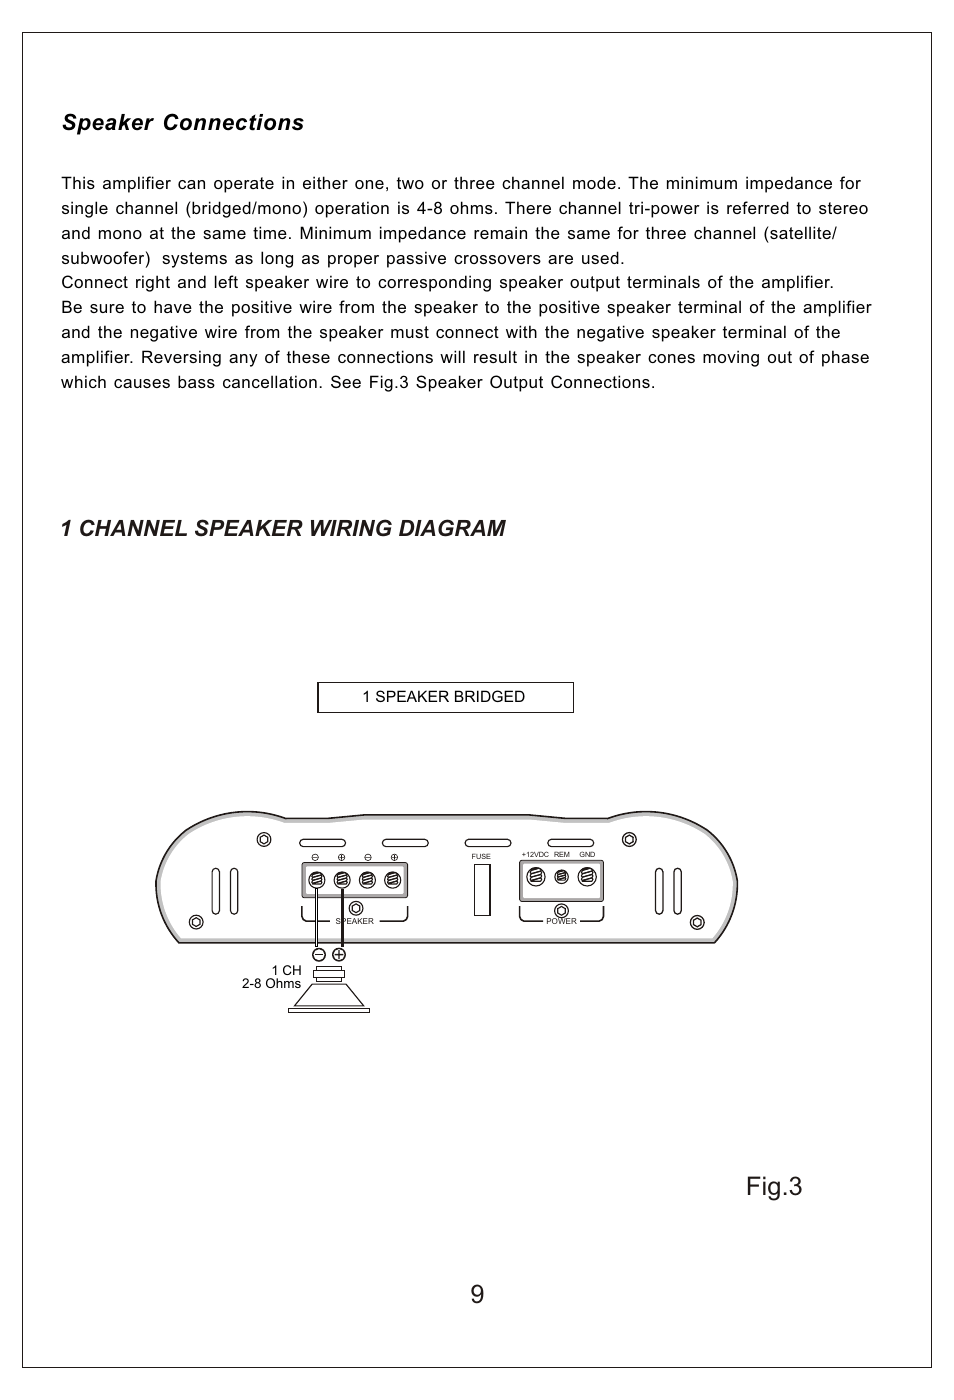 medium resolution of fig 3 1 channel speaker wiring diagram speaker connections bassworx ba150 2 user manual page 10 16